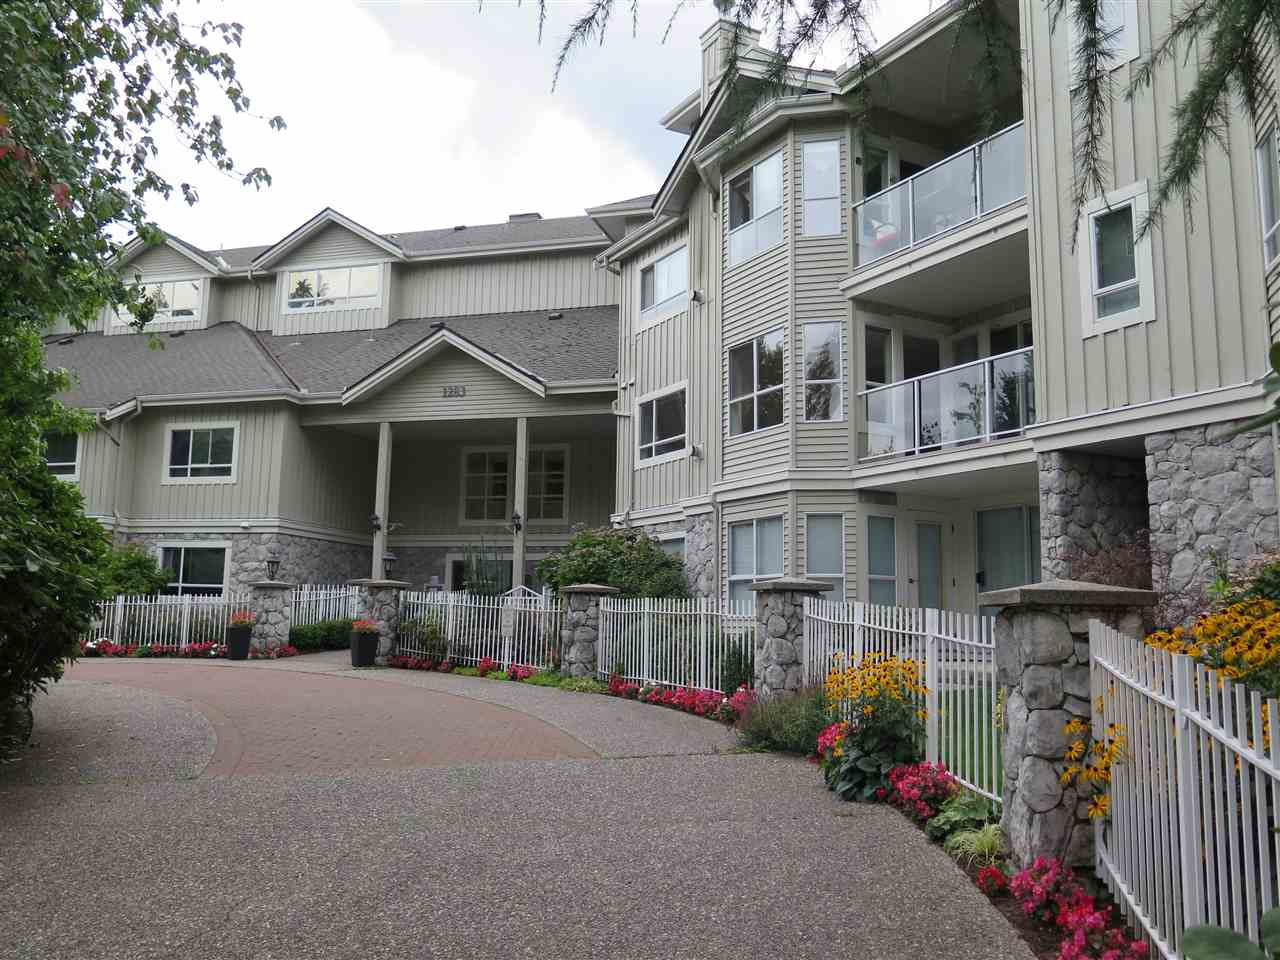 Parkgate Place, good layout with 2 bedrooms on opposite side to maintain privacy & 2 full bath. Close to Seymour and Northlands Golf course. New paint, stainless steel appliances, hardwood flooring, gas fireplace, 2 parking stalls side by side. Quiet building located in a cul-de-sac with no through traffic. Easy to show with short notice.